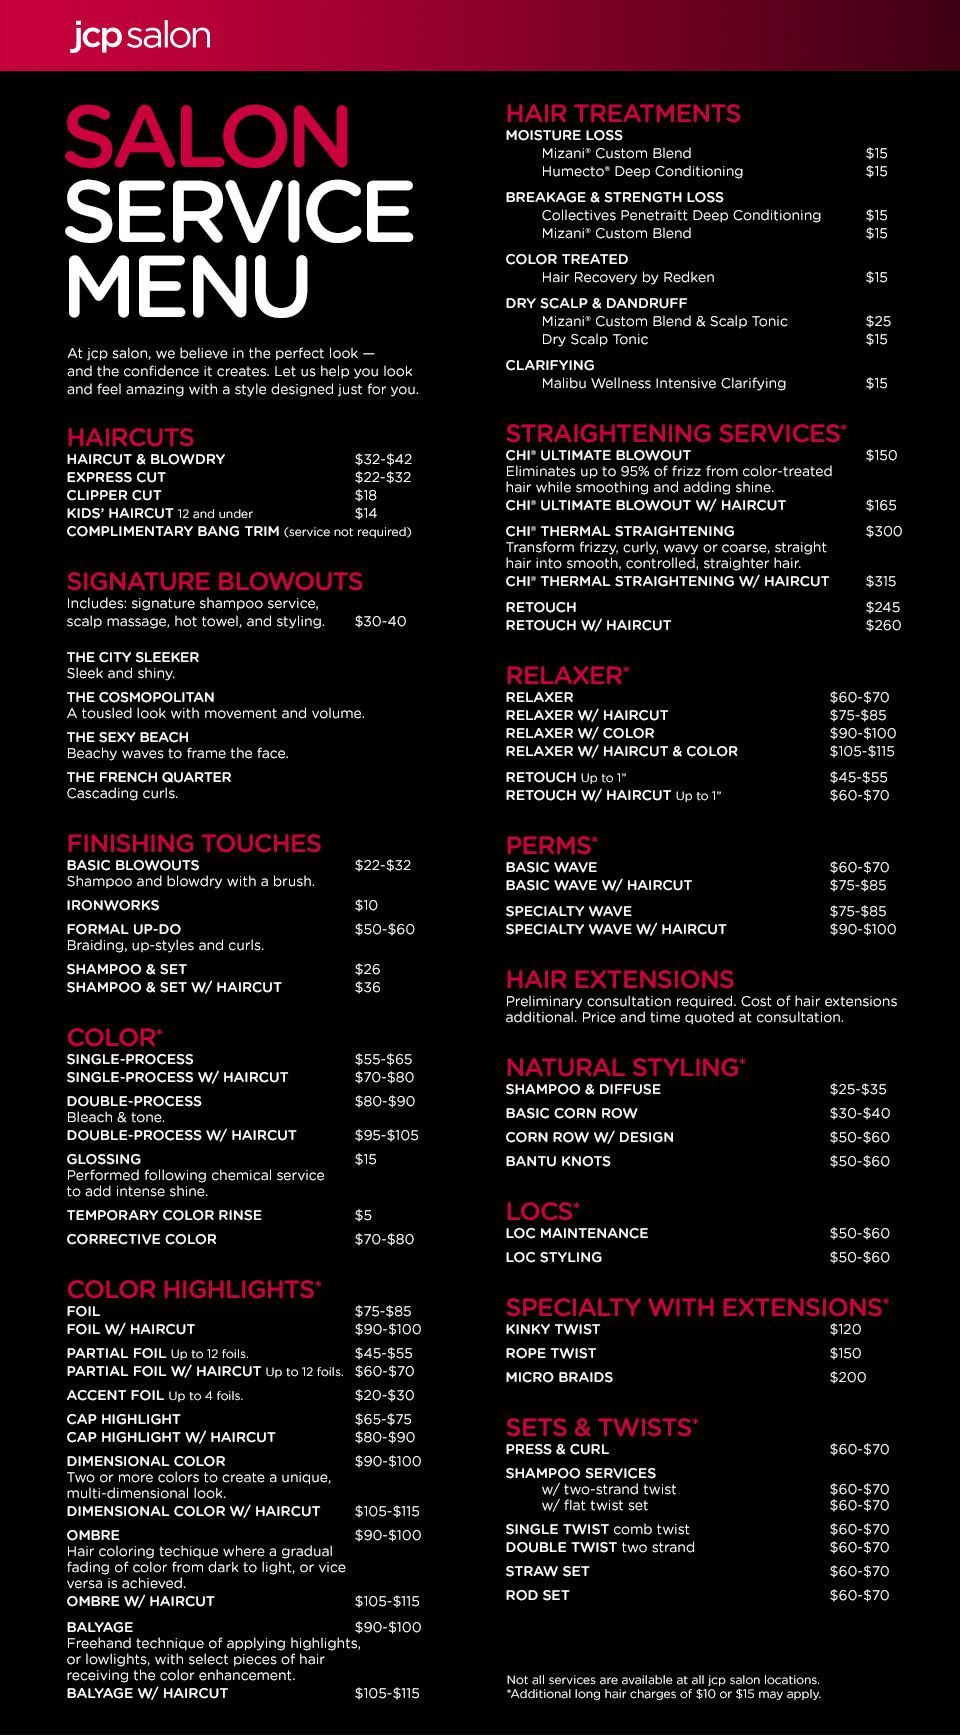 Jcp Salon Located Inside Jcpenney Service Menu  Business